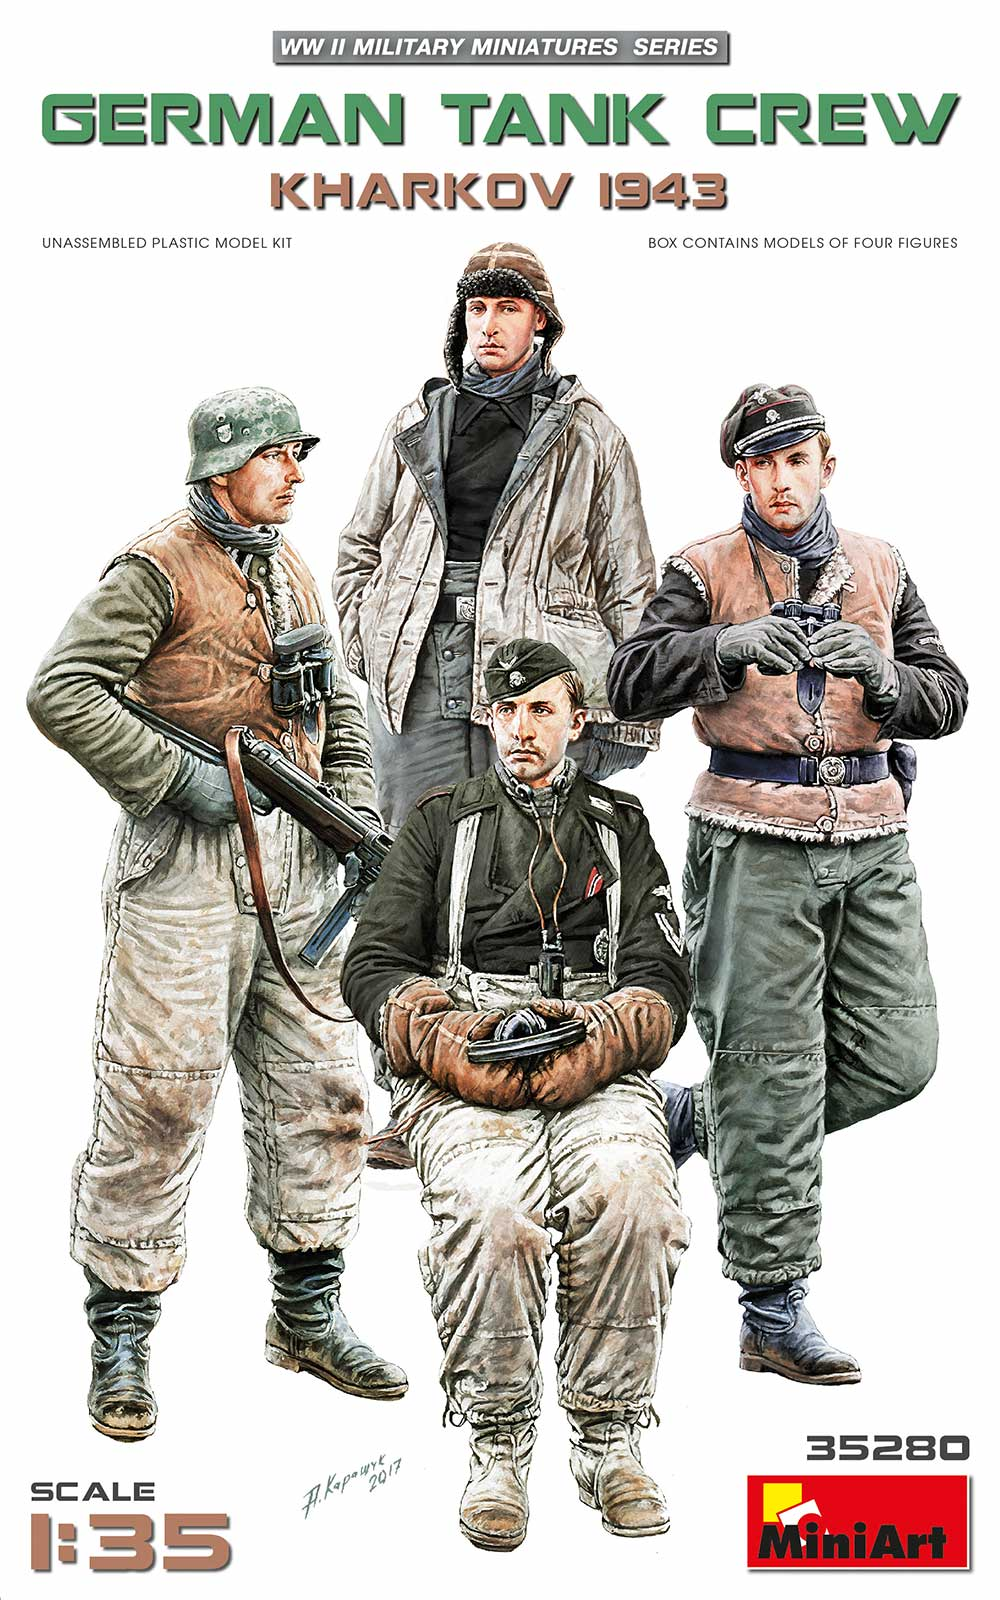 MiniArt German Tank Crew Kharkov 1943""